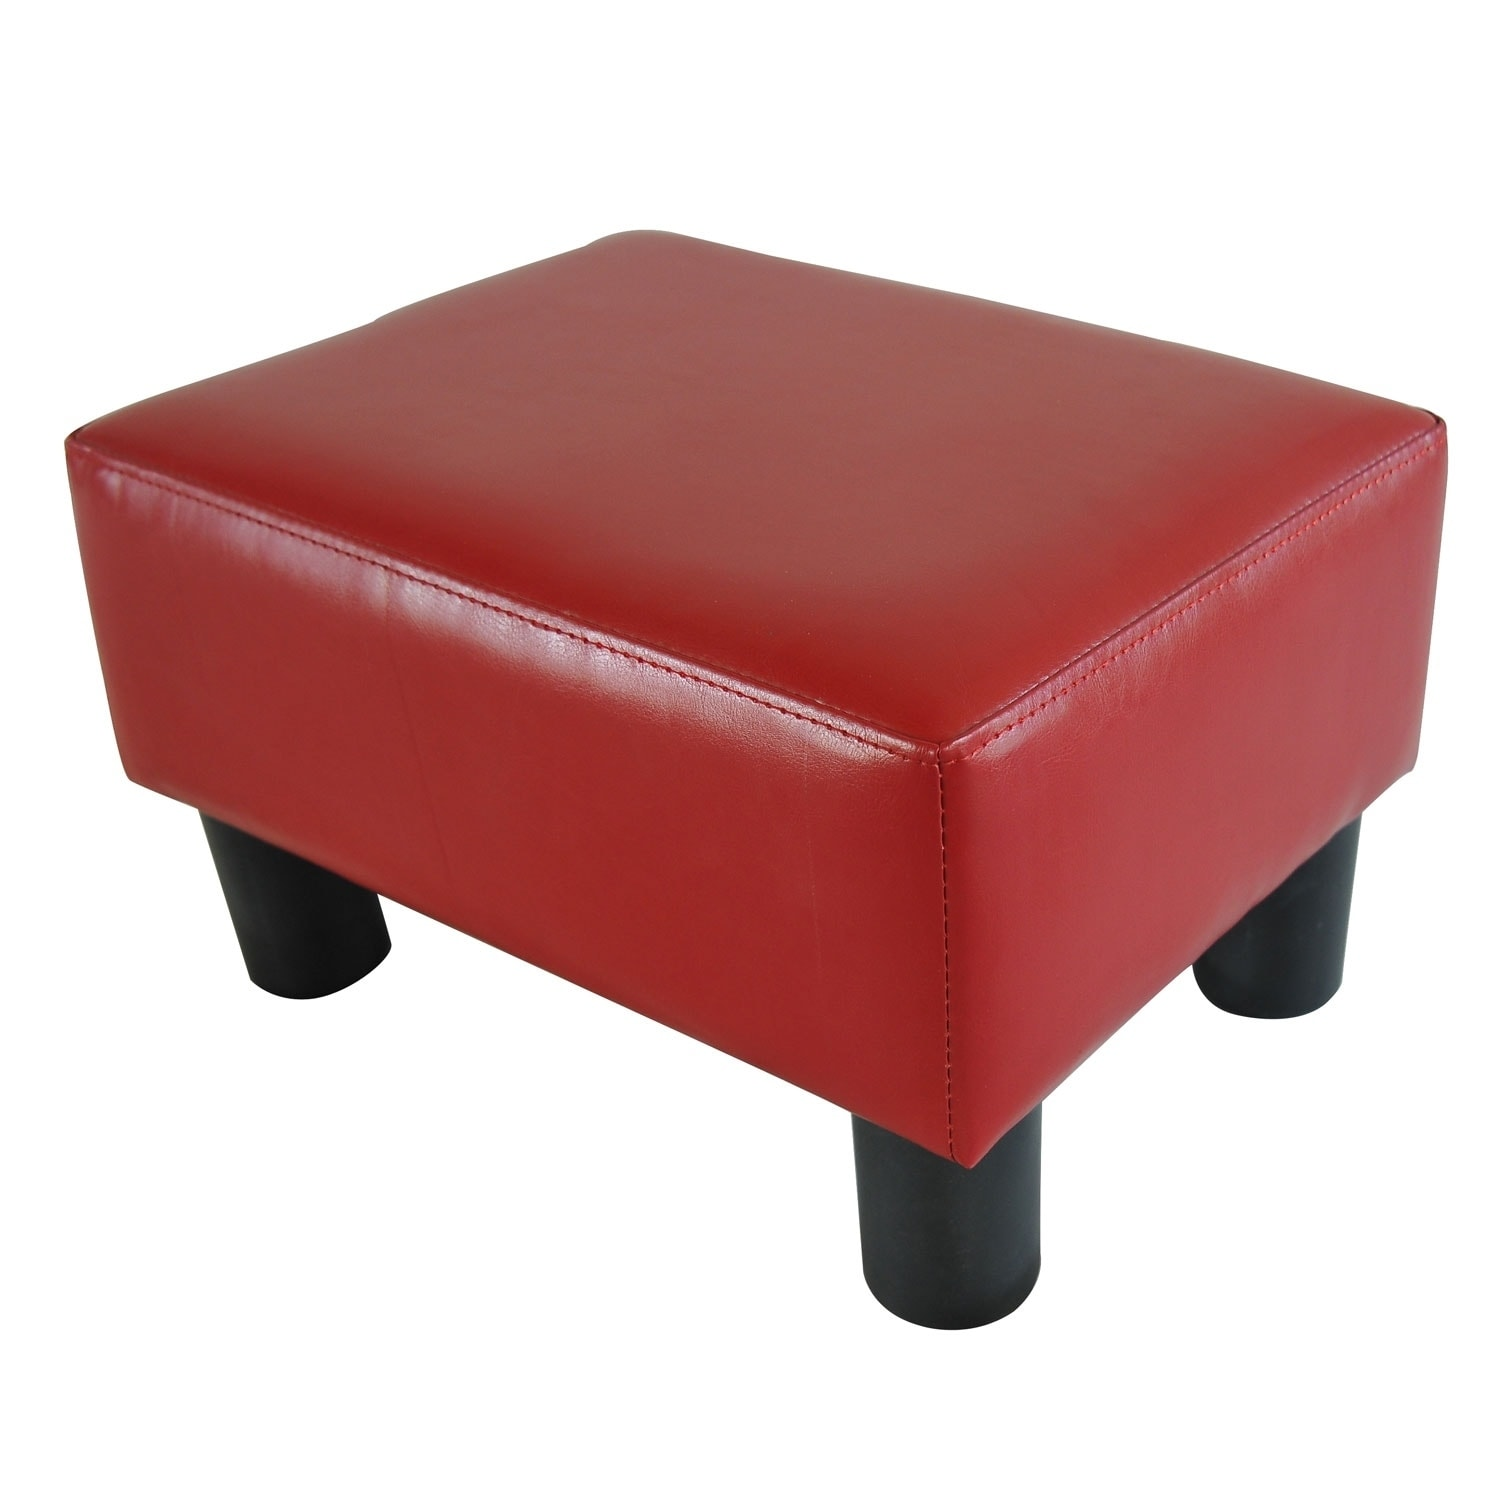 Shop porch den meadow modern small red faux leather ottoman footrest stool free shipping on orders over 45 overstock com 22580959